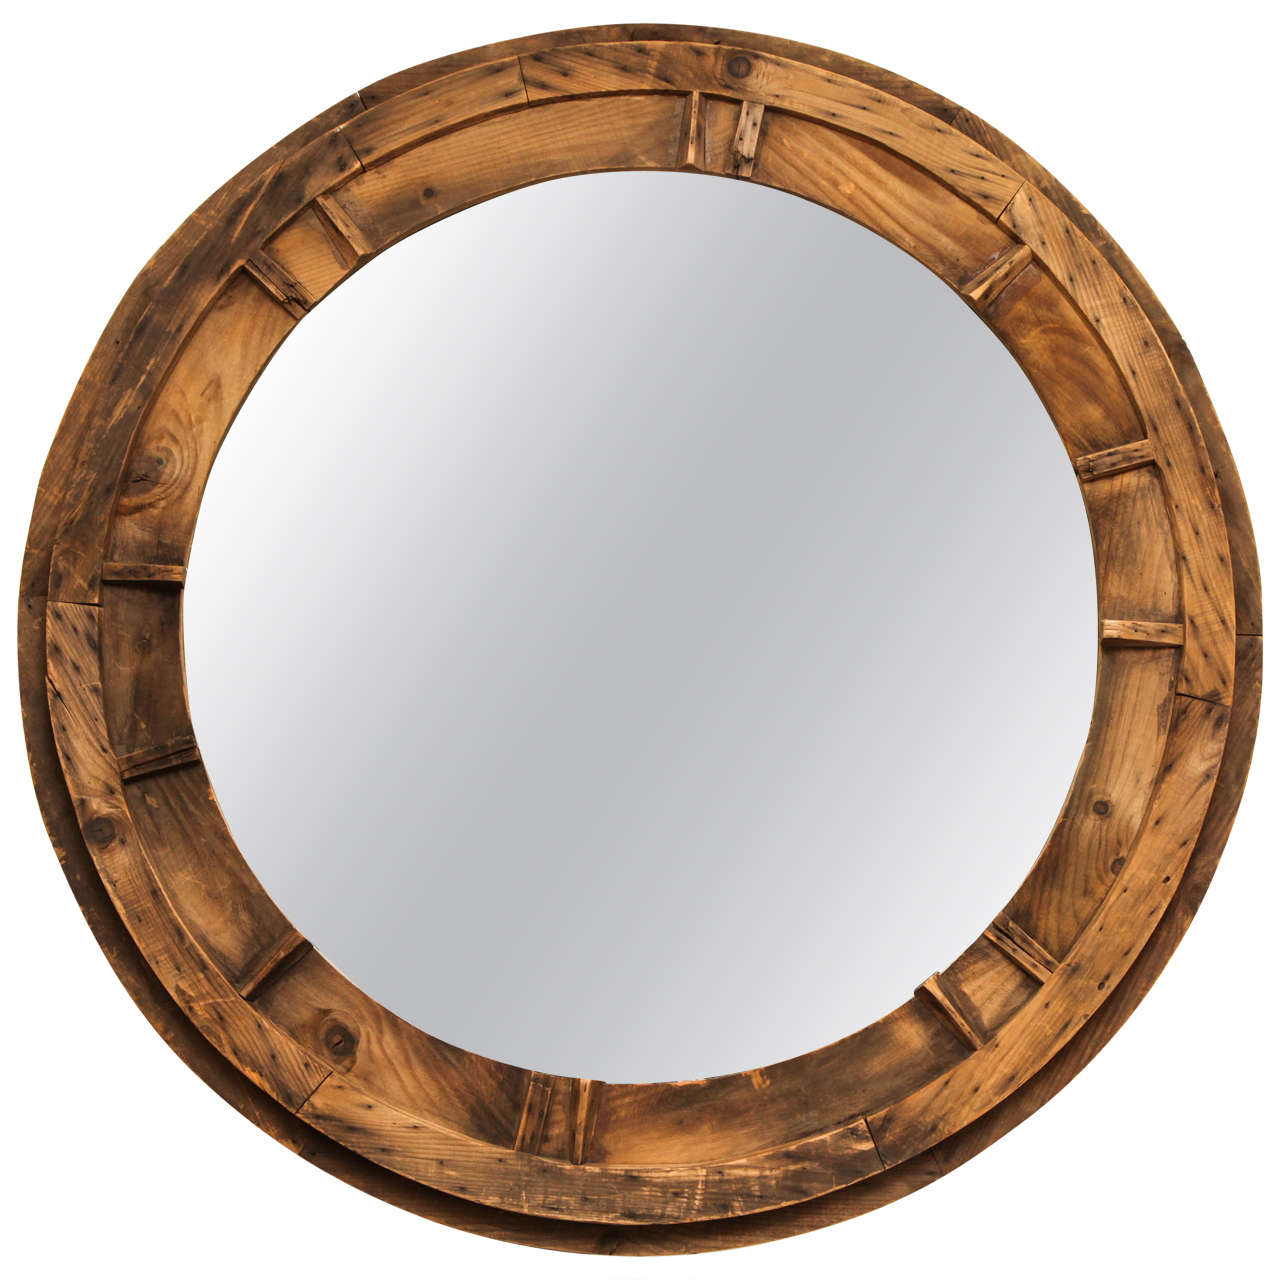 Large round sandmold mirror at 1stdibs for Large mirror